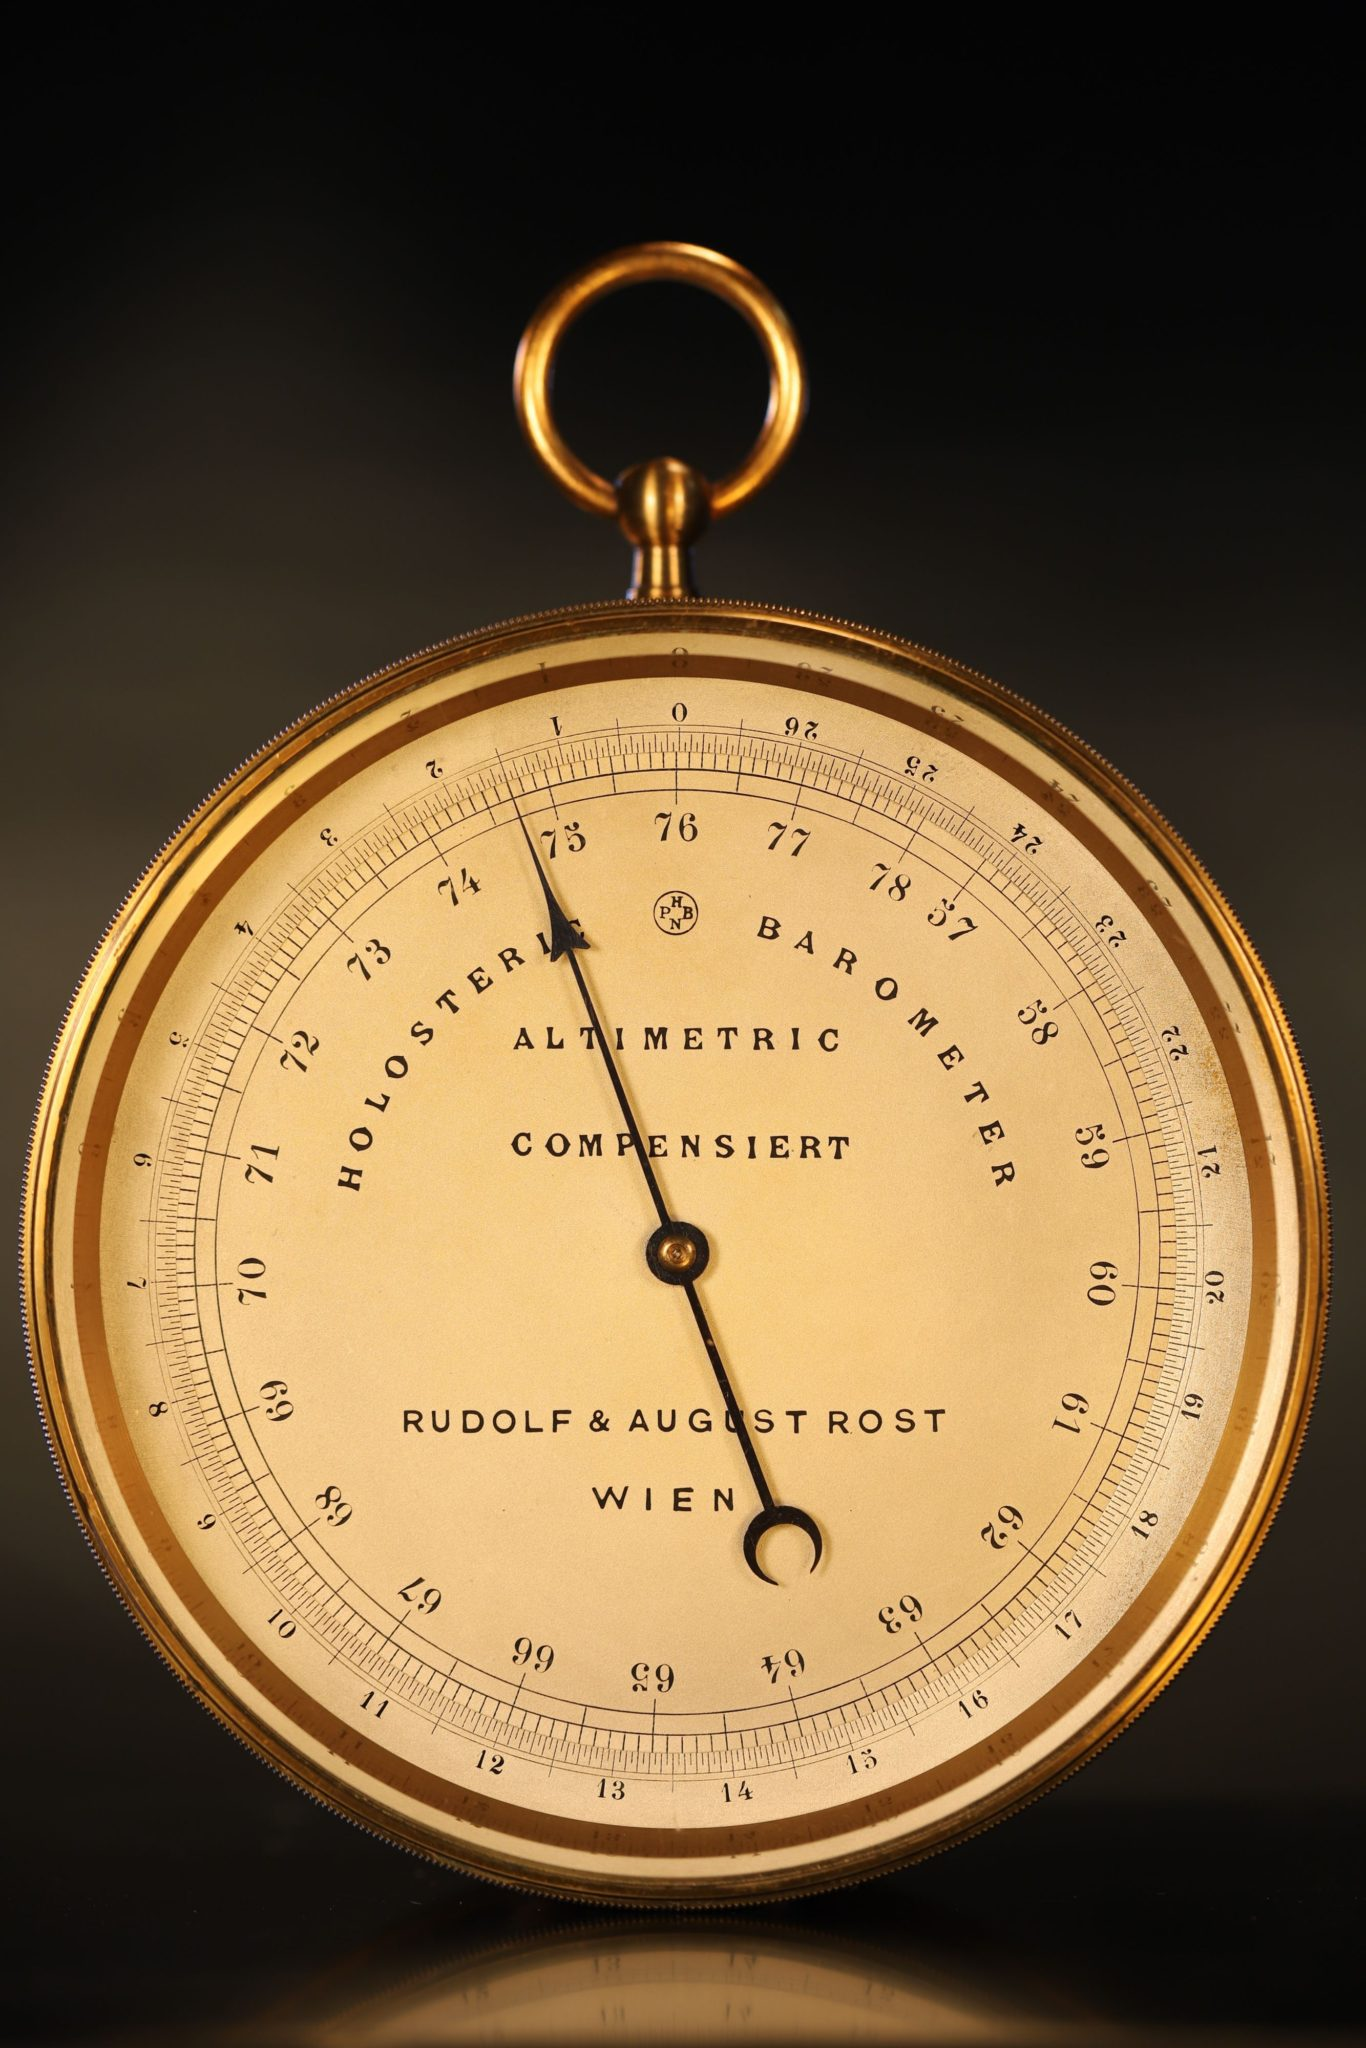 Image of Naudet Barometer Altimeter Retailed by Rost